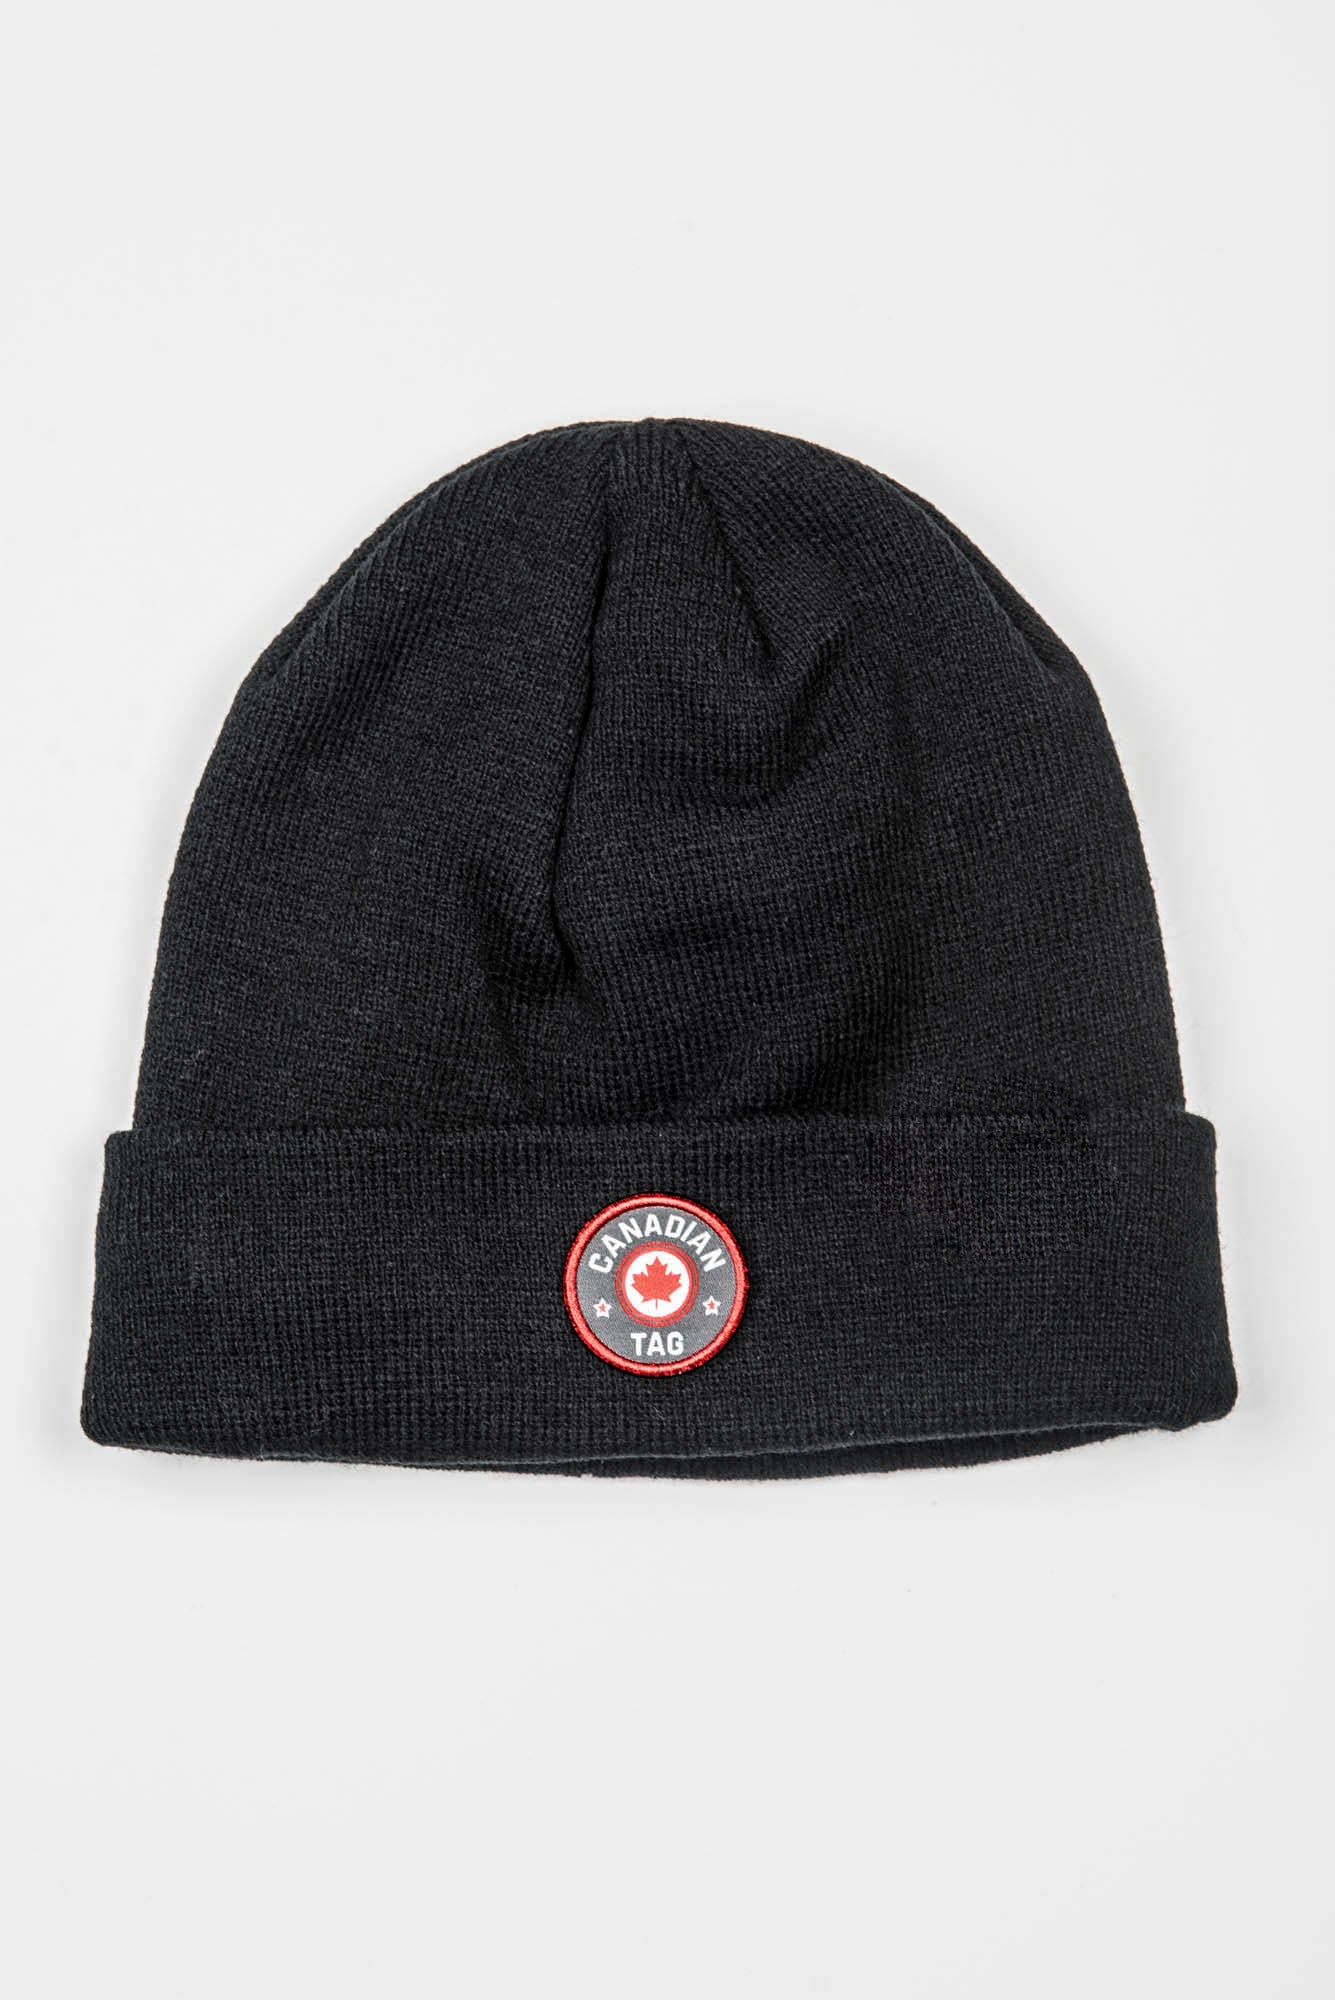 CANADIAN TAG TUQUE- JASPER